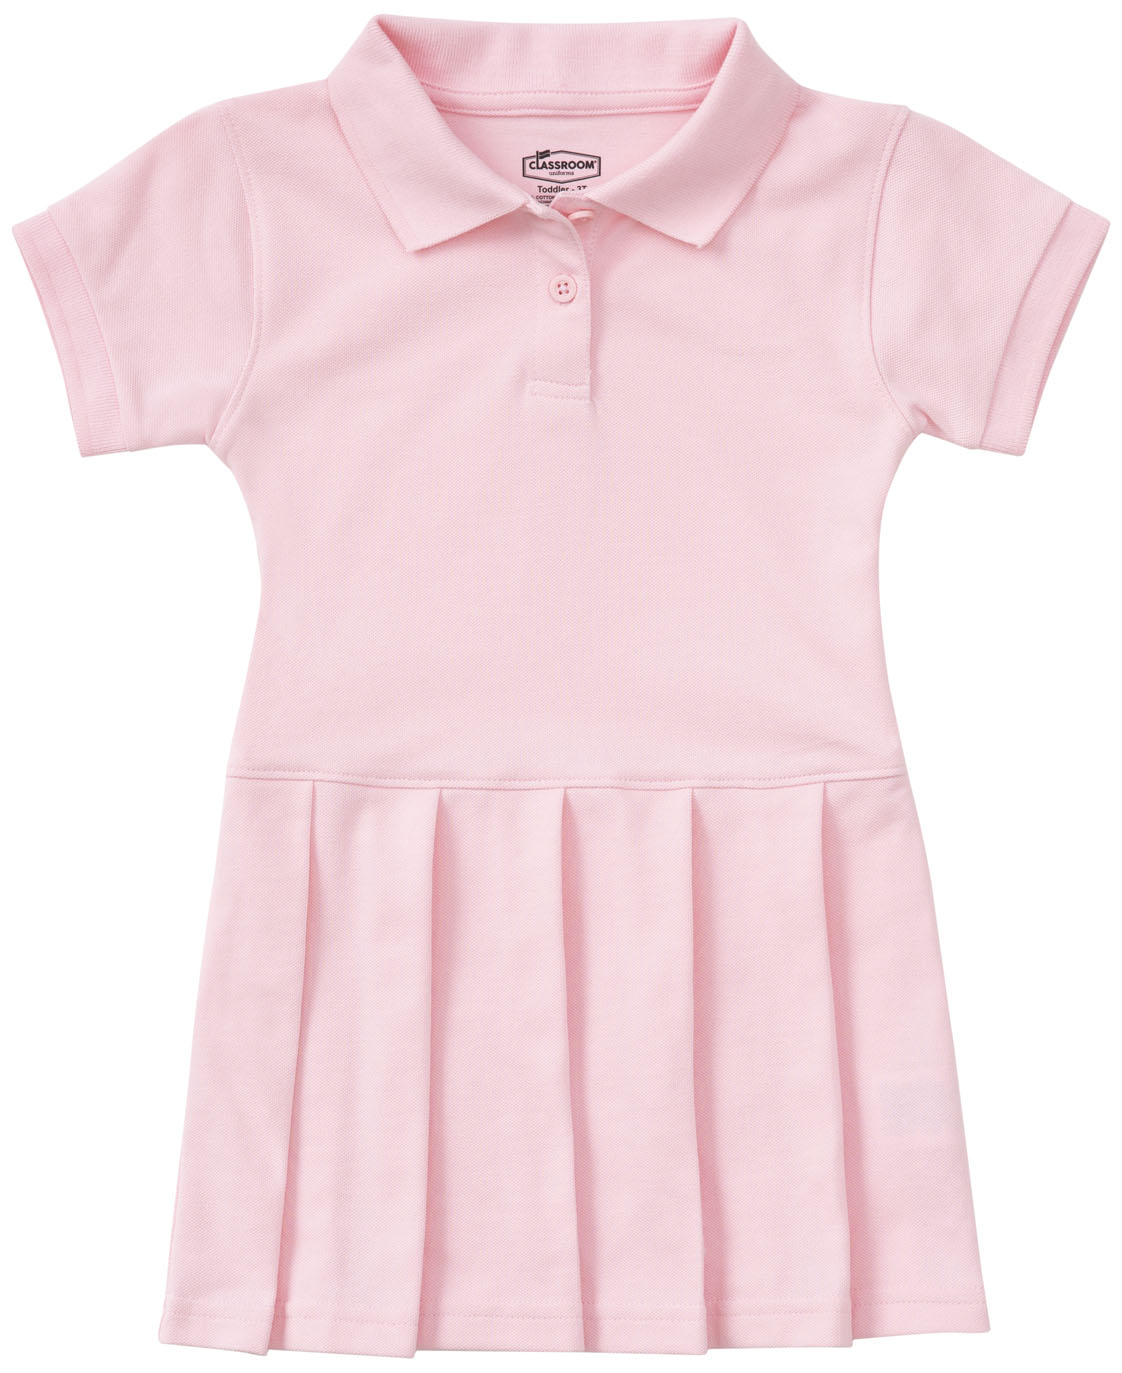 Classroom Toddler Ss Pique Polo Dres In Pink 54120 Pink From